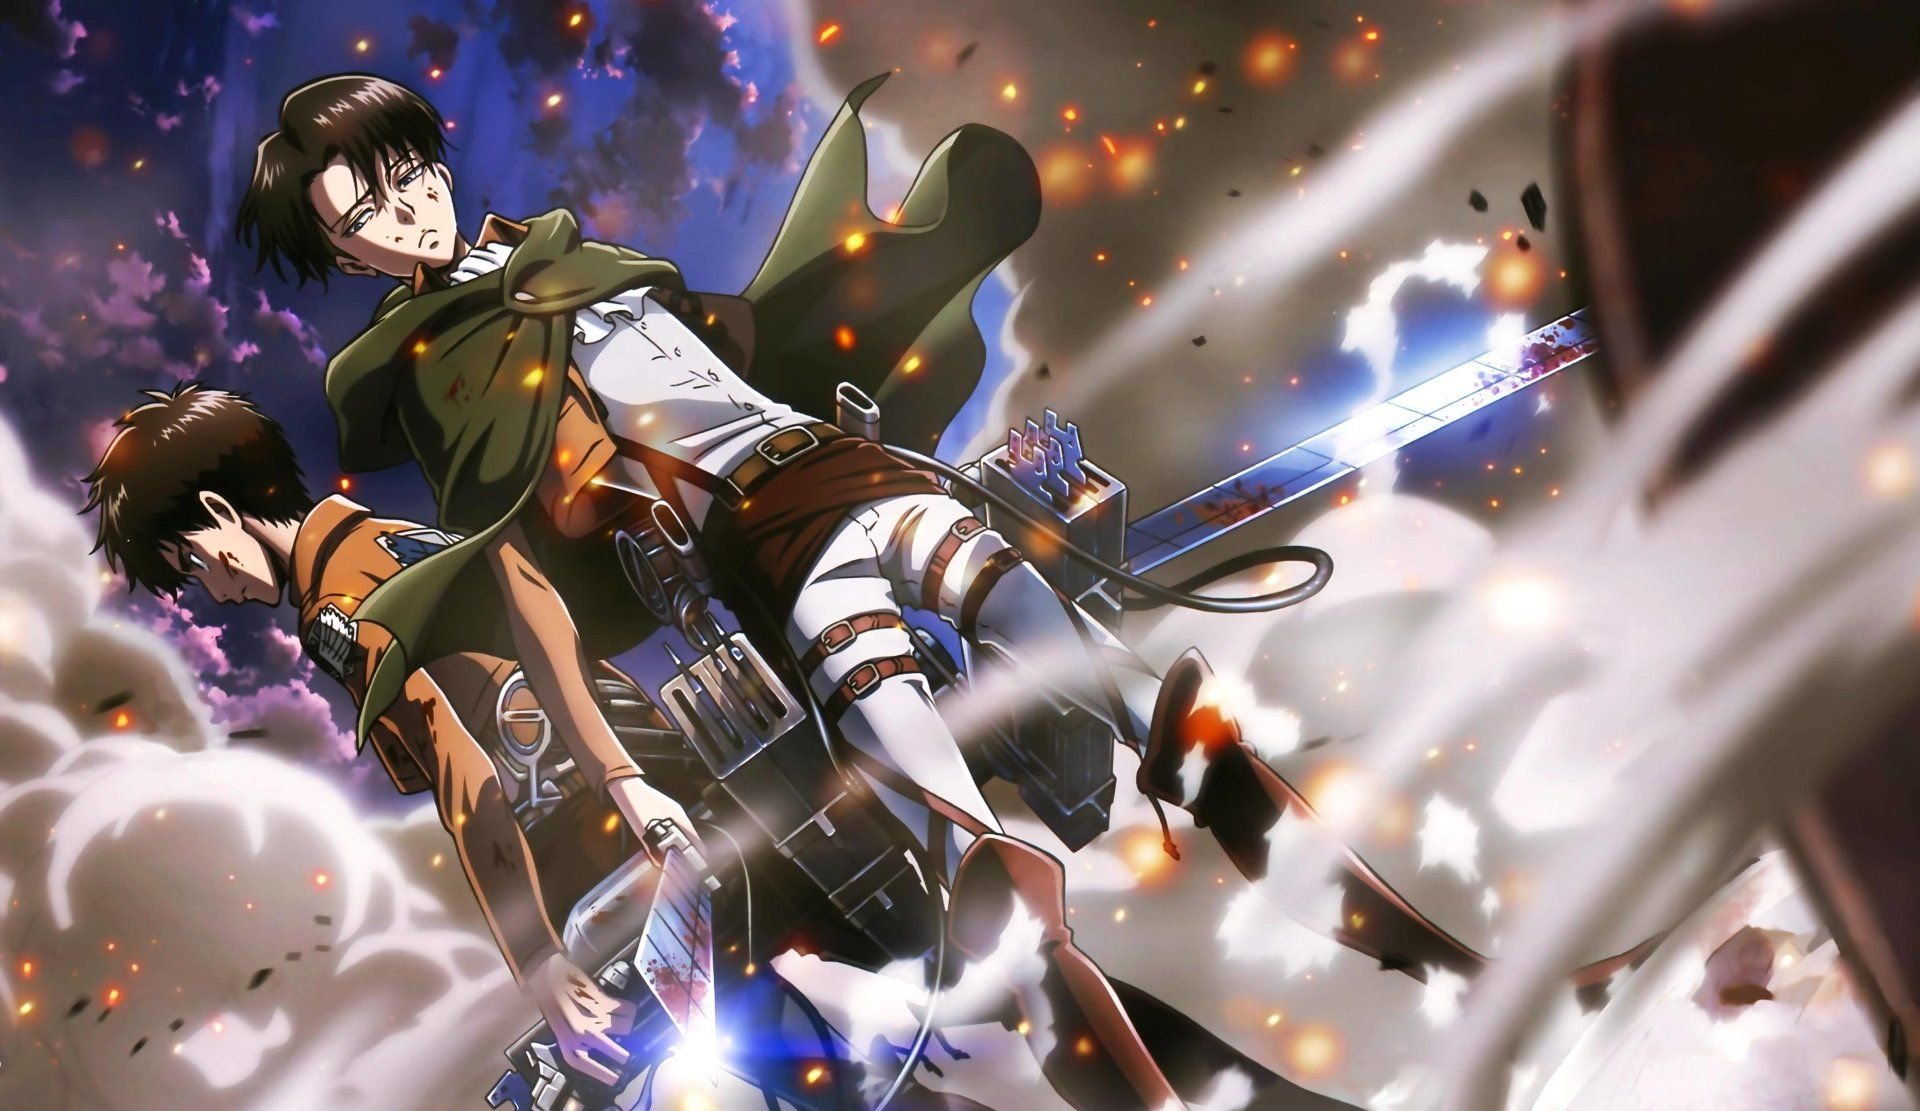 Anime Attack On Titan Eren Yeager Levi Ackerman Wallpaper Attack On Titan Anime Attack On Titan Attack On Titan Eren